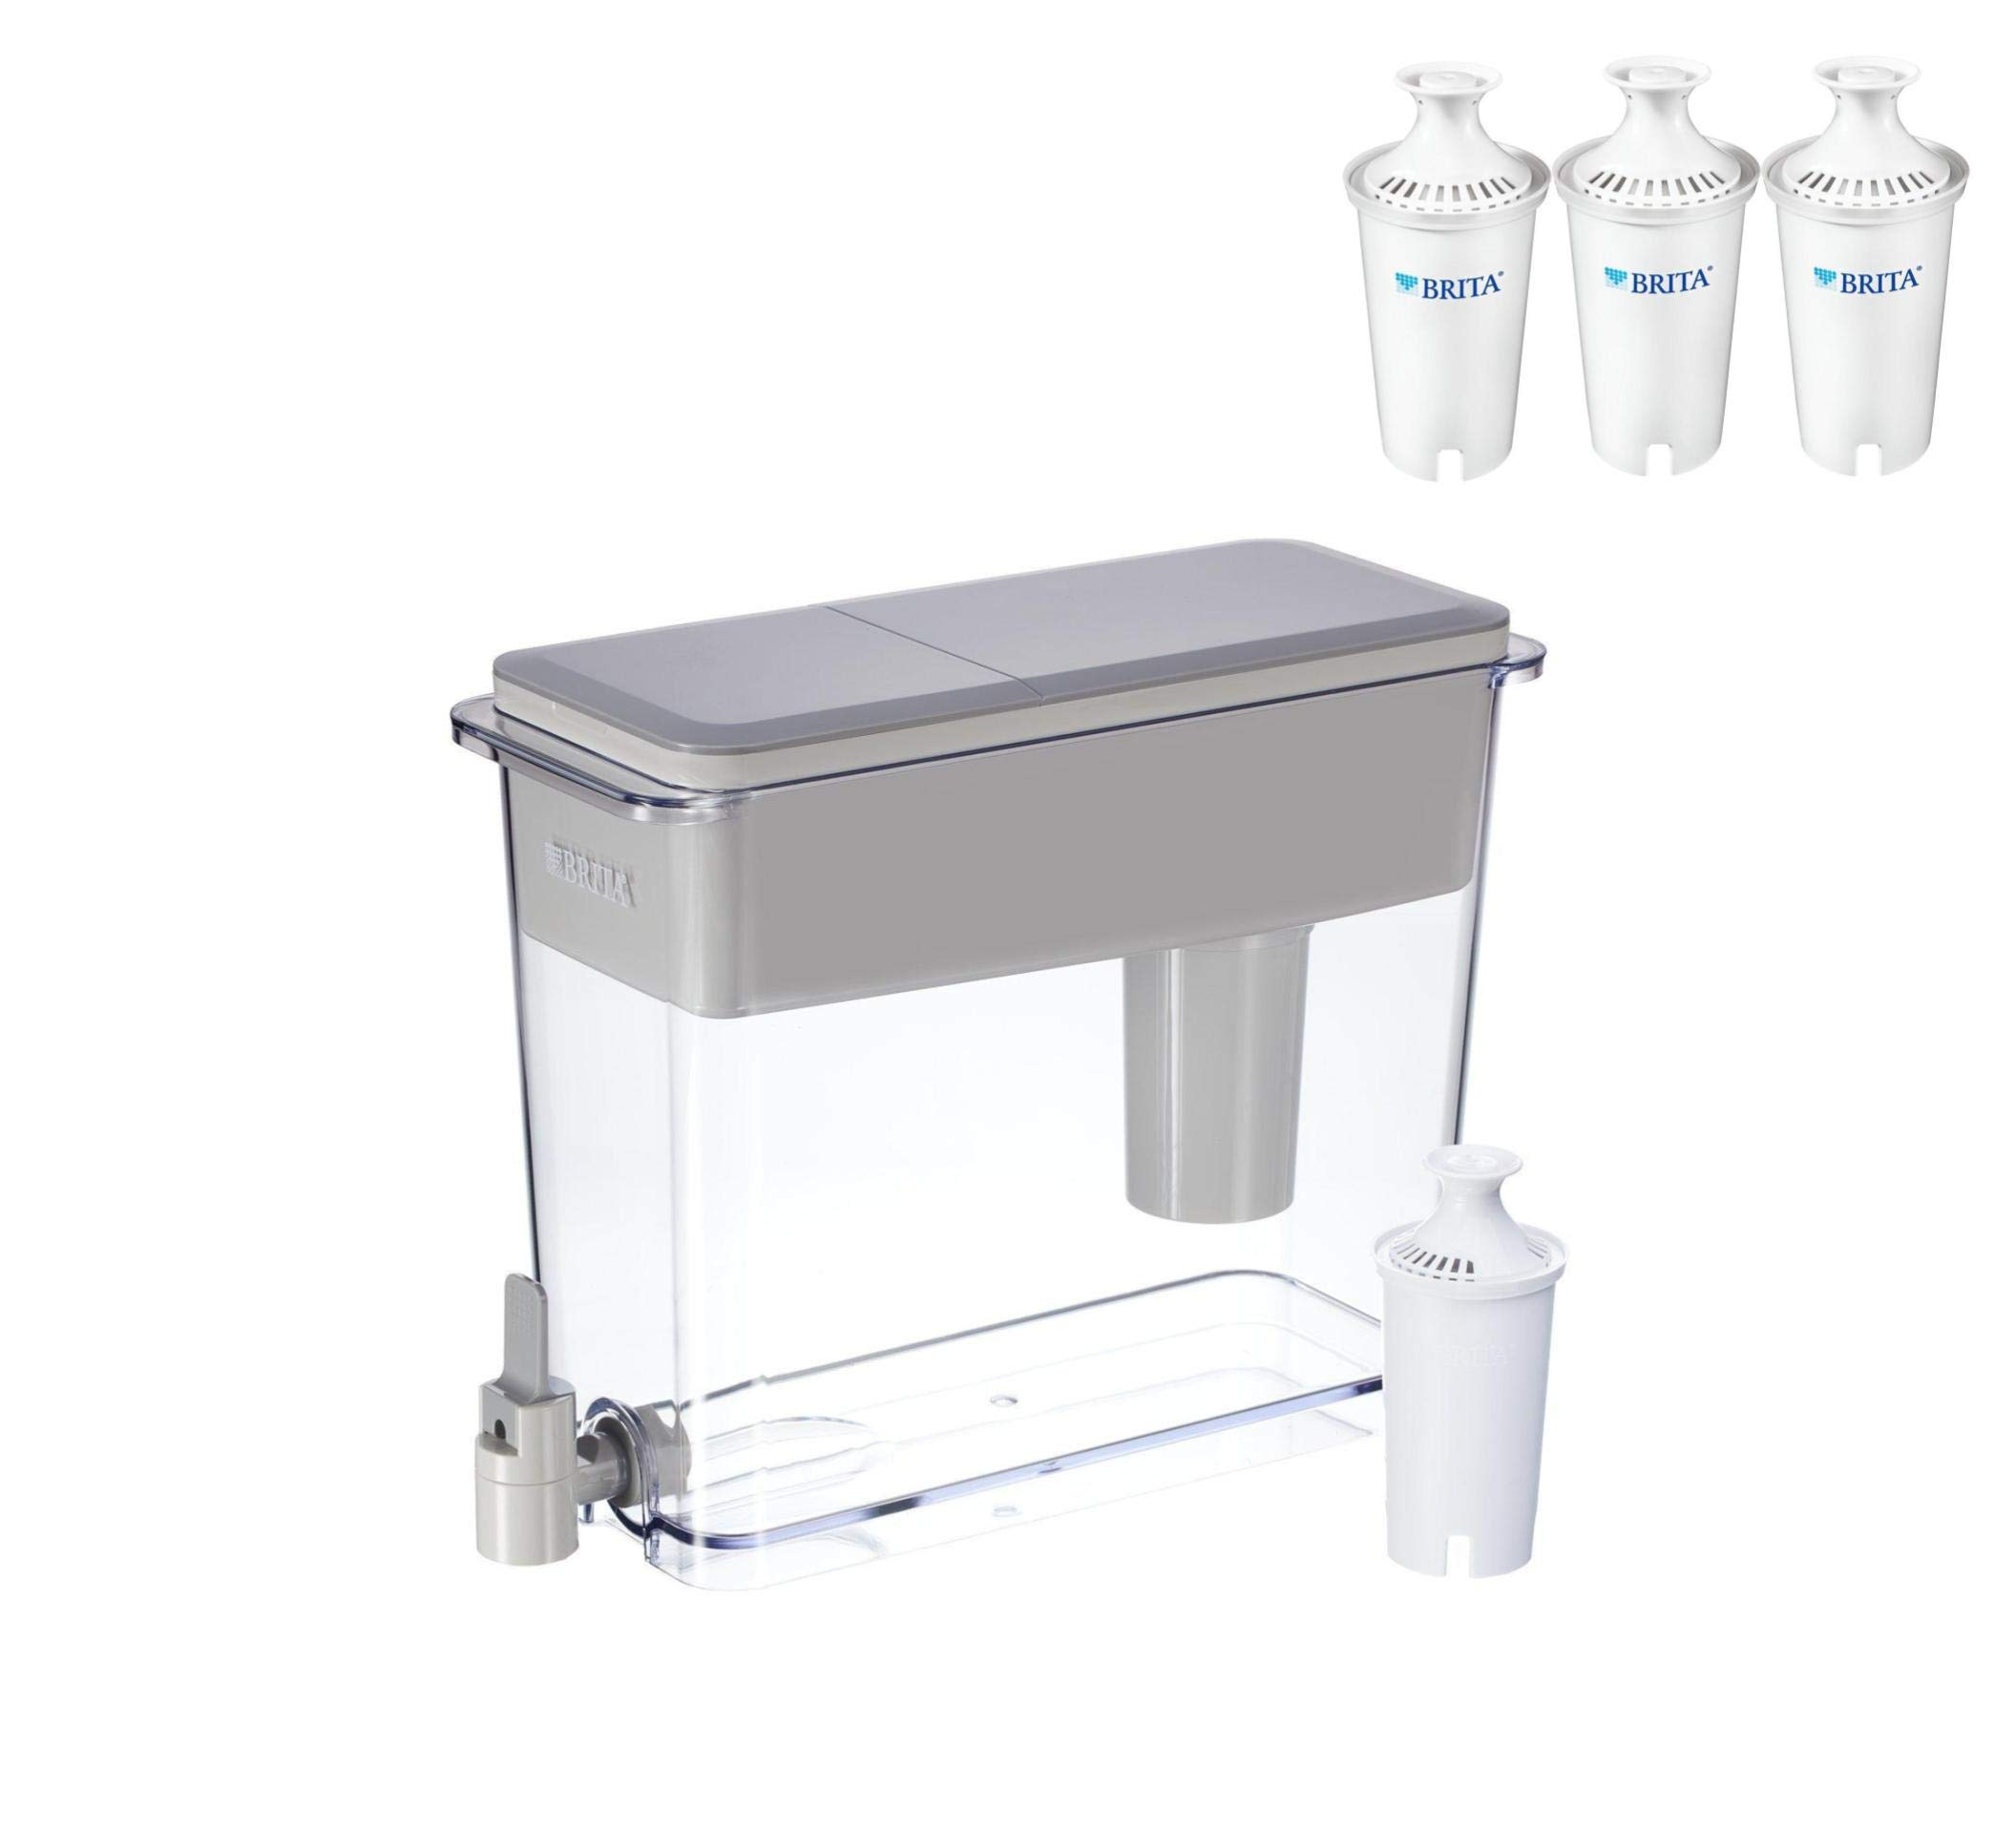 Brita Extra Large 18 Cup Filtered Water Dispenser (UltraMax Dispenser with 4 Filters)